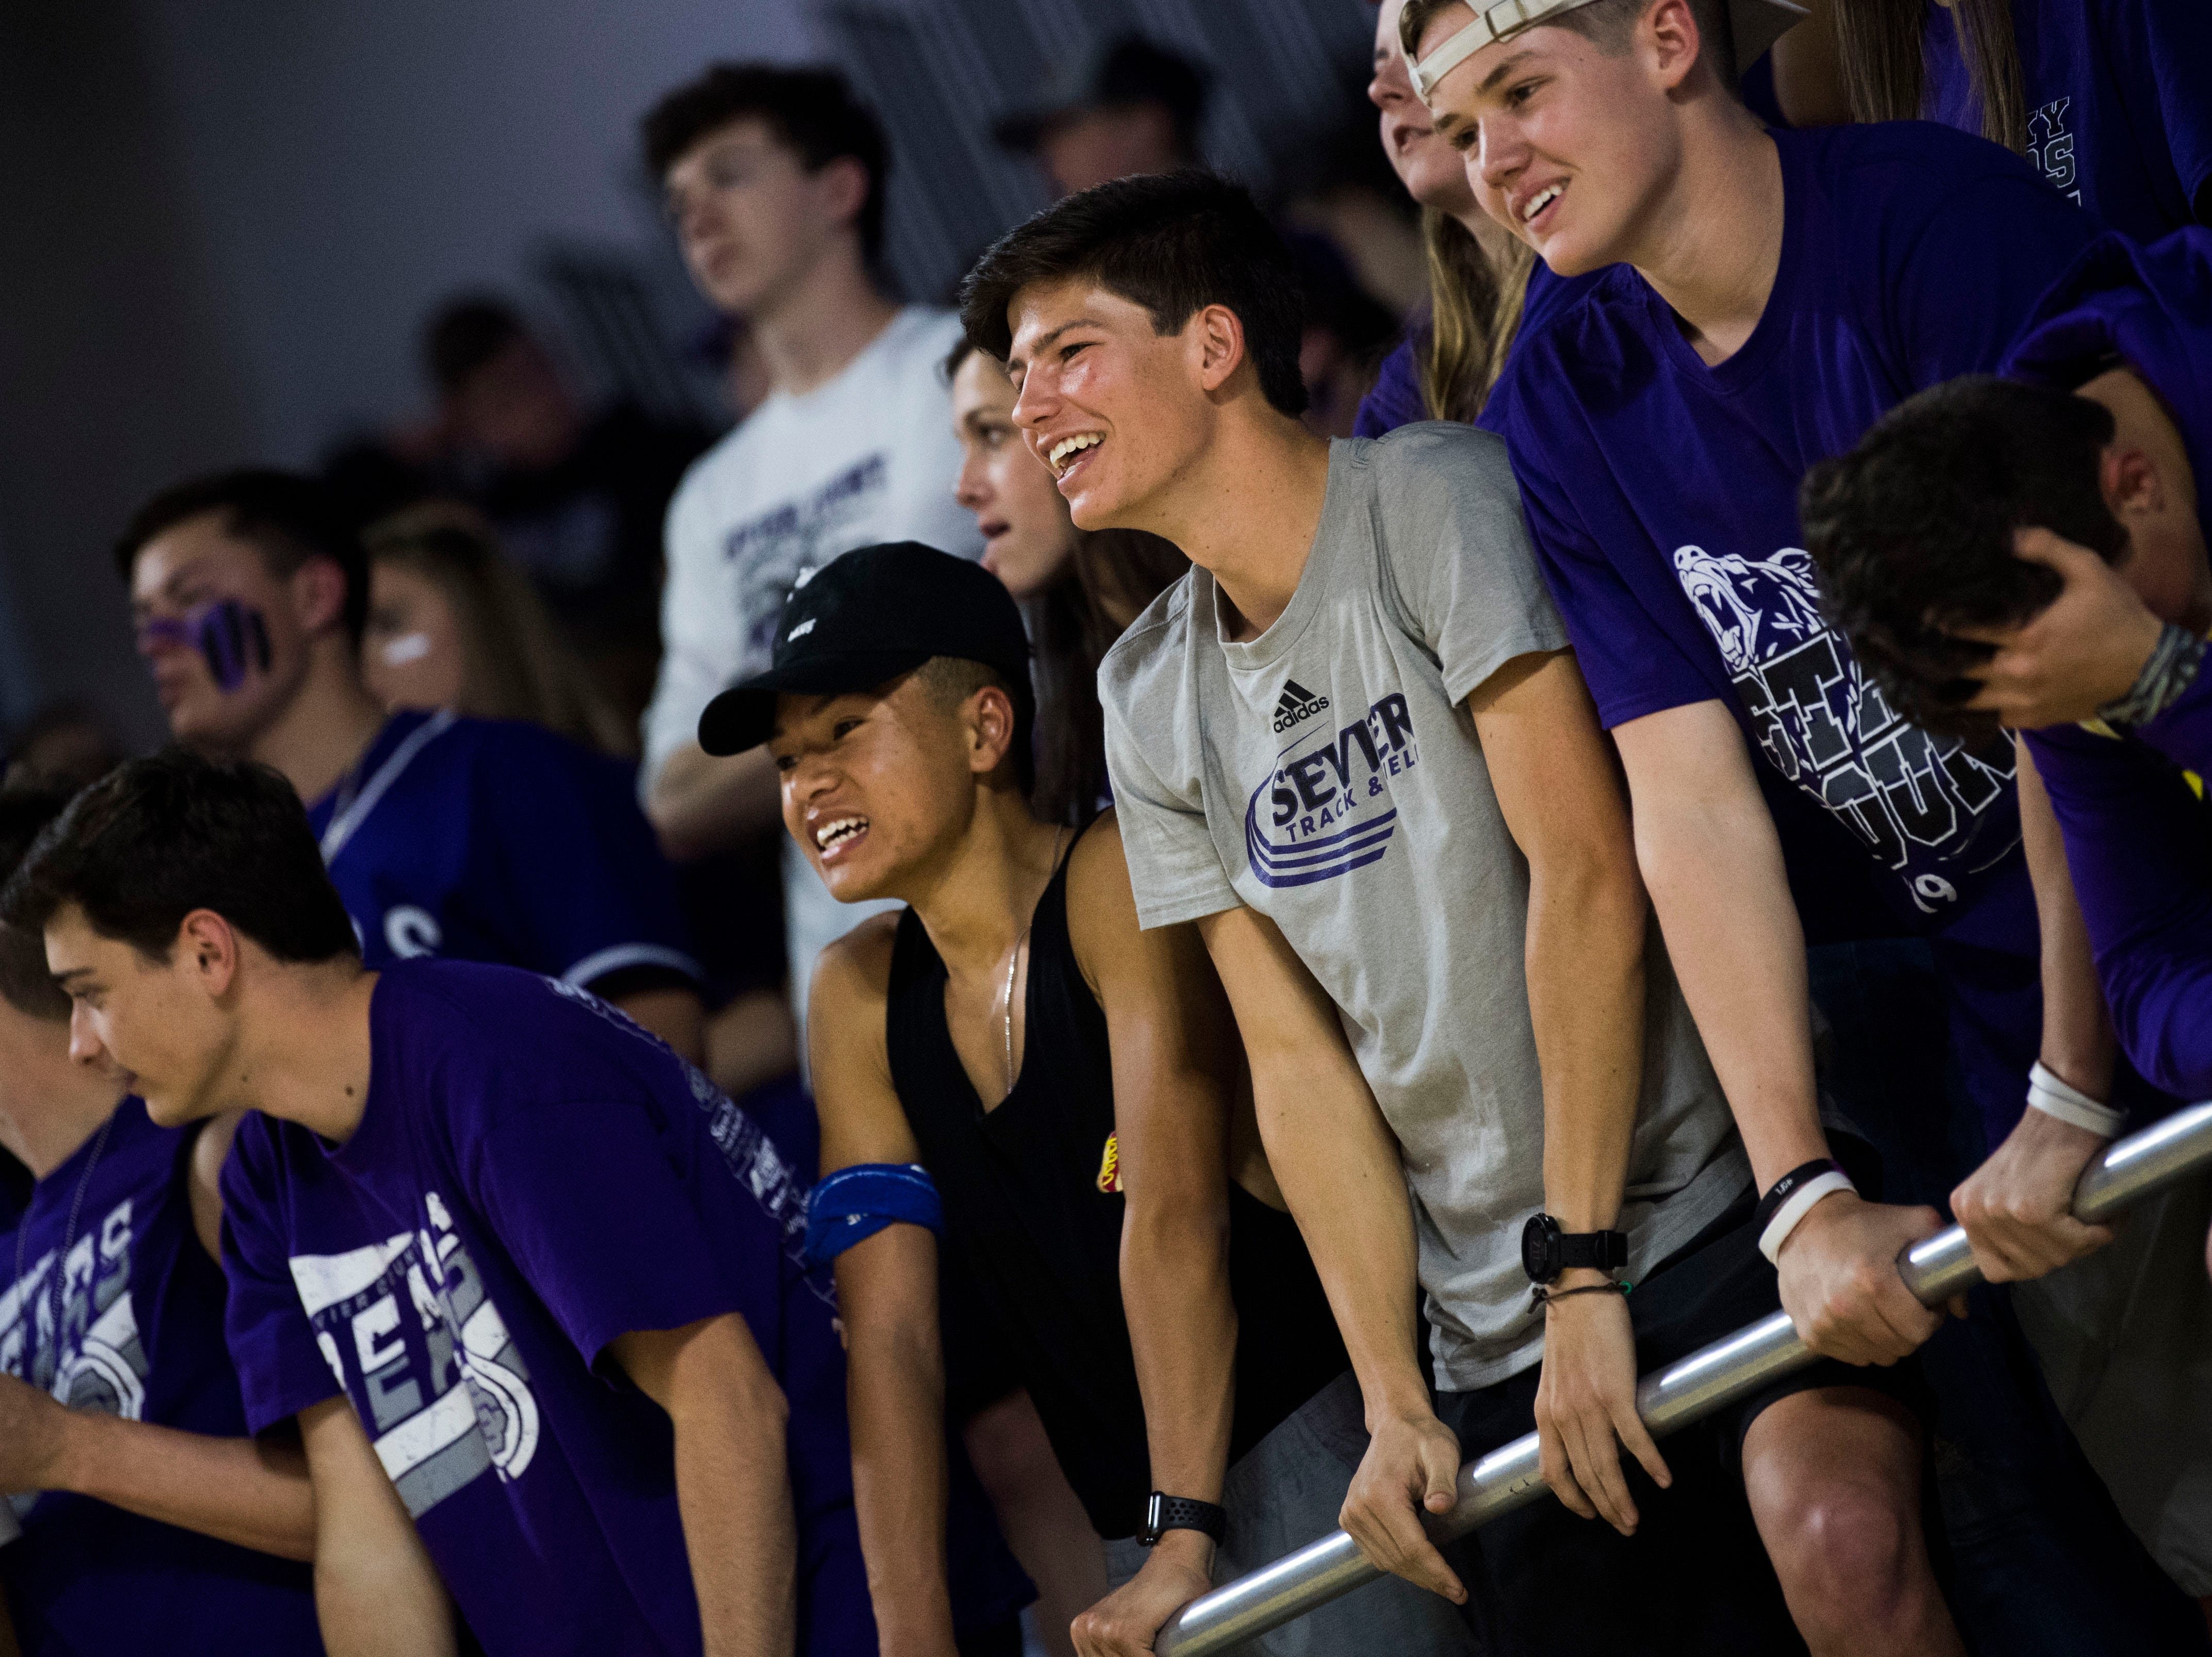 Sevier County fans cheer during a TSSAA AAA state quarterfinal game between Sevier County and Whitehaven at the Murphy Center in Murfreesboro, Wednesday, March 13, 2019.